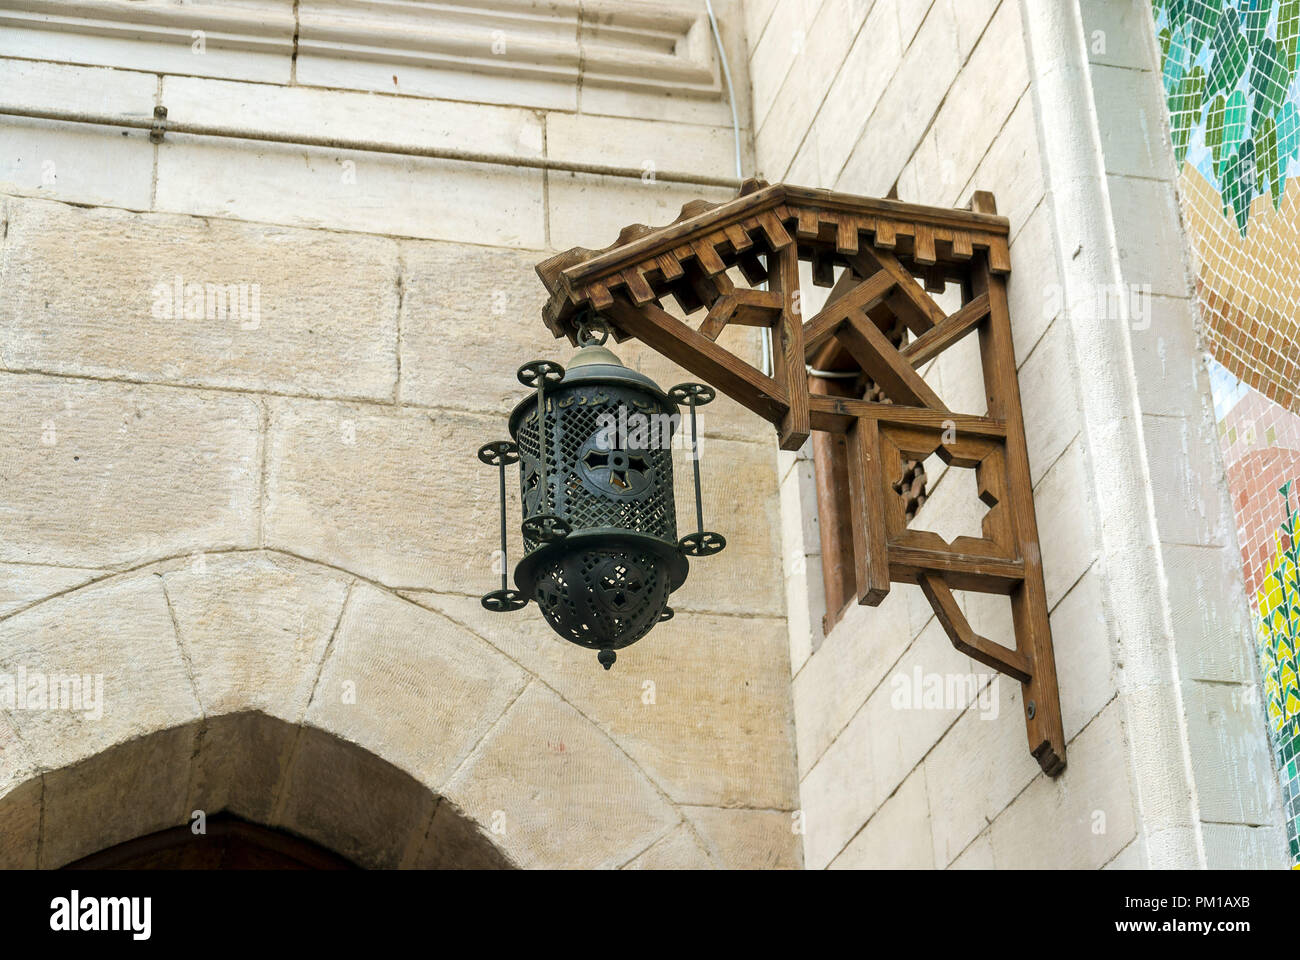 Old iron lantern with a cross hanging from a wooden frame on a stone ...